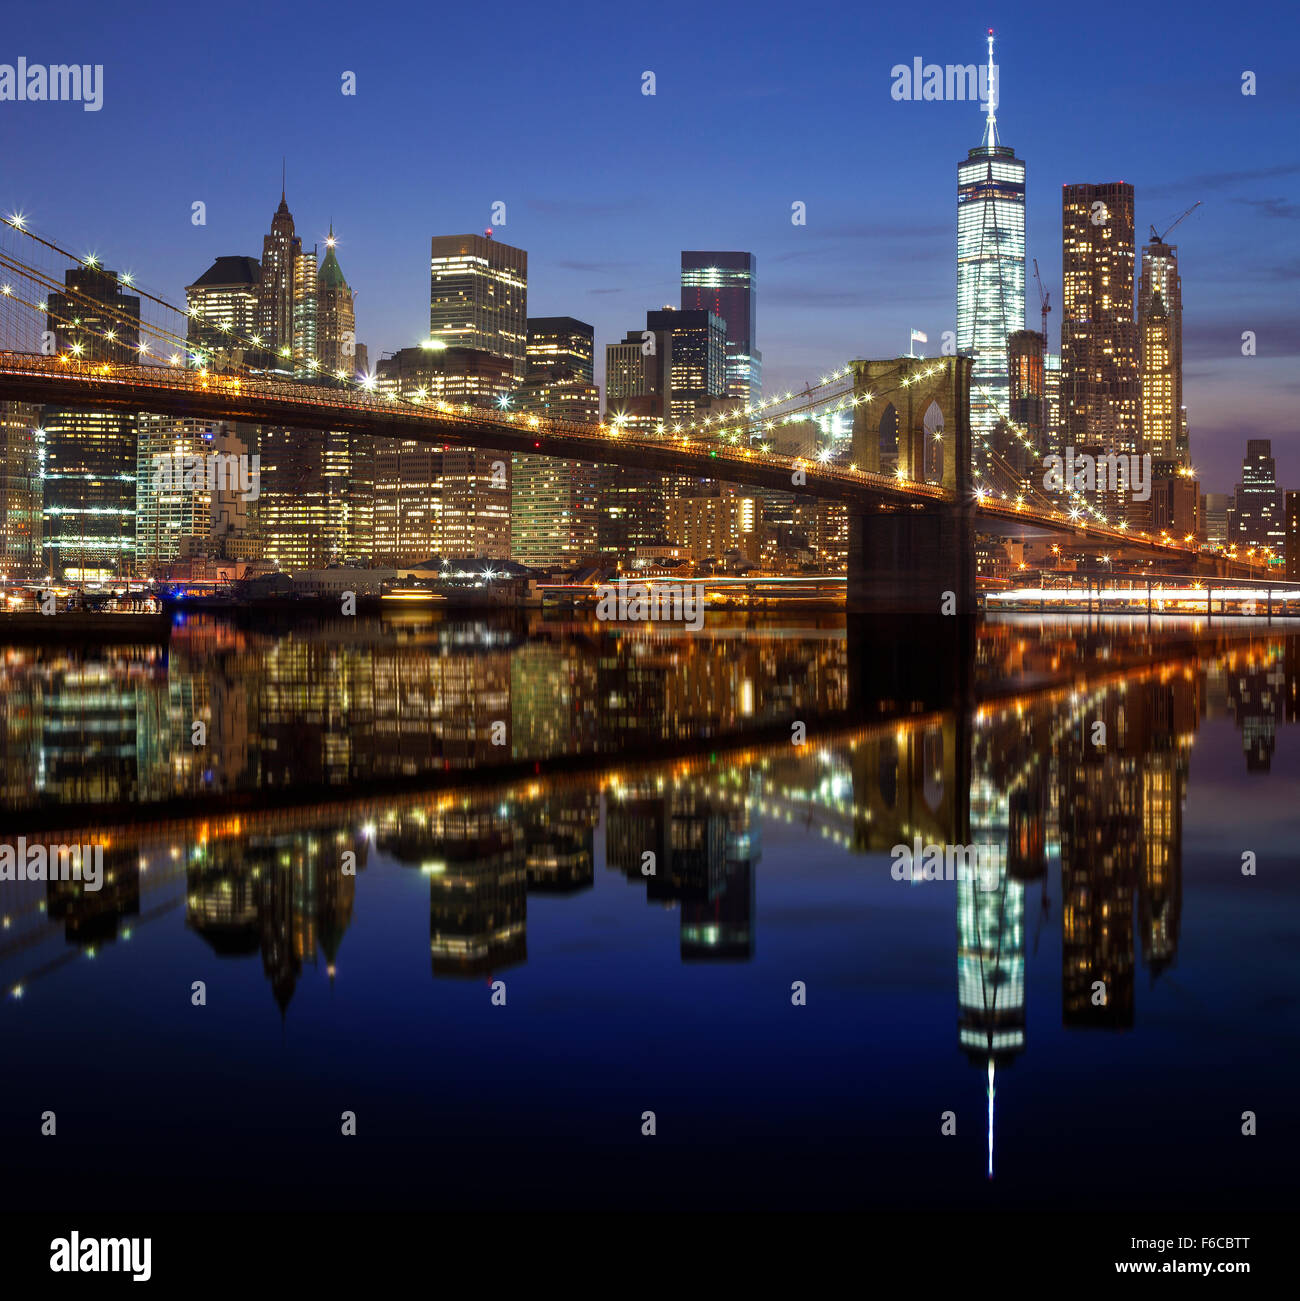 Manhattan waterfront reflected in water at night, New York City, USA. - Stock Image